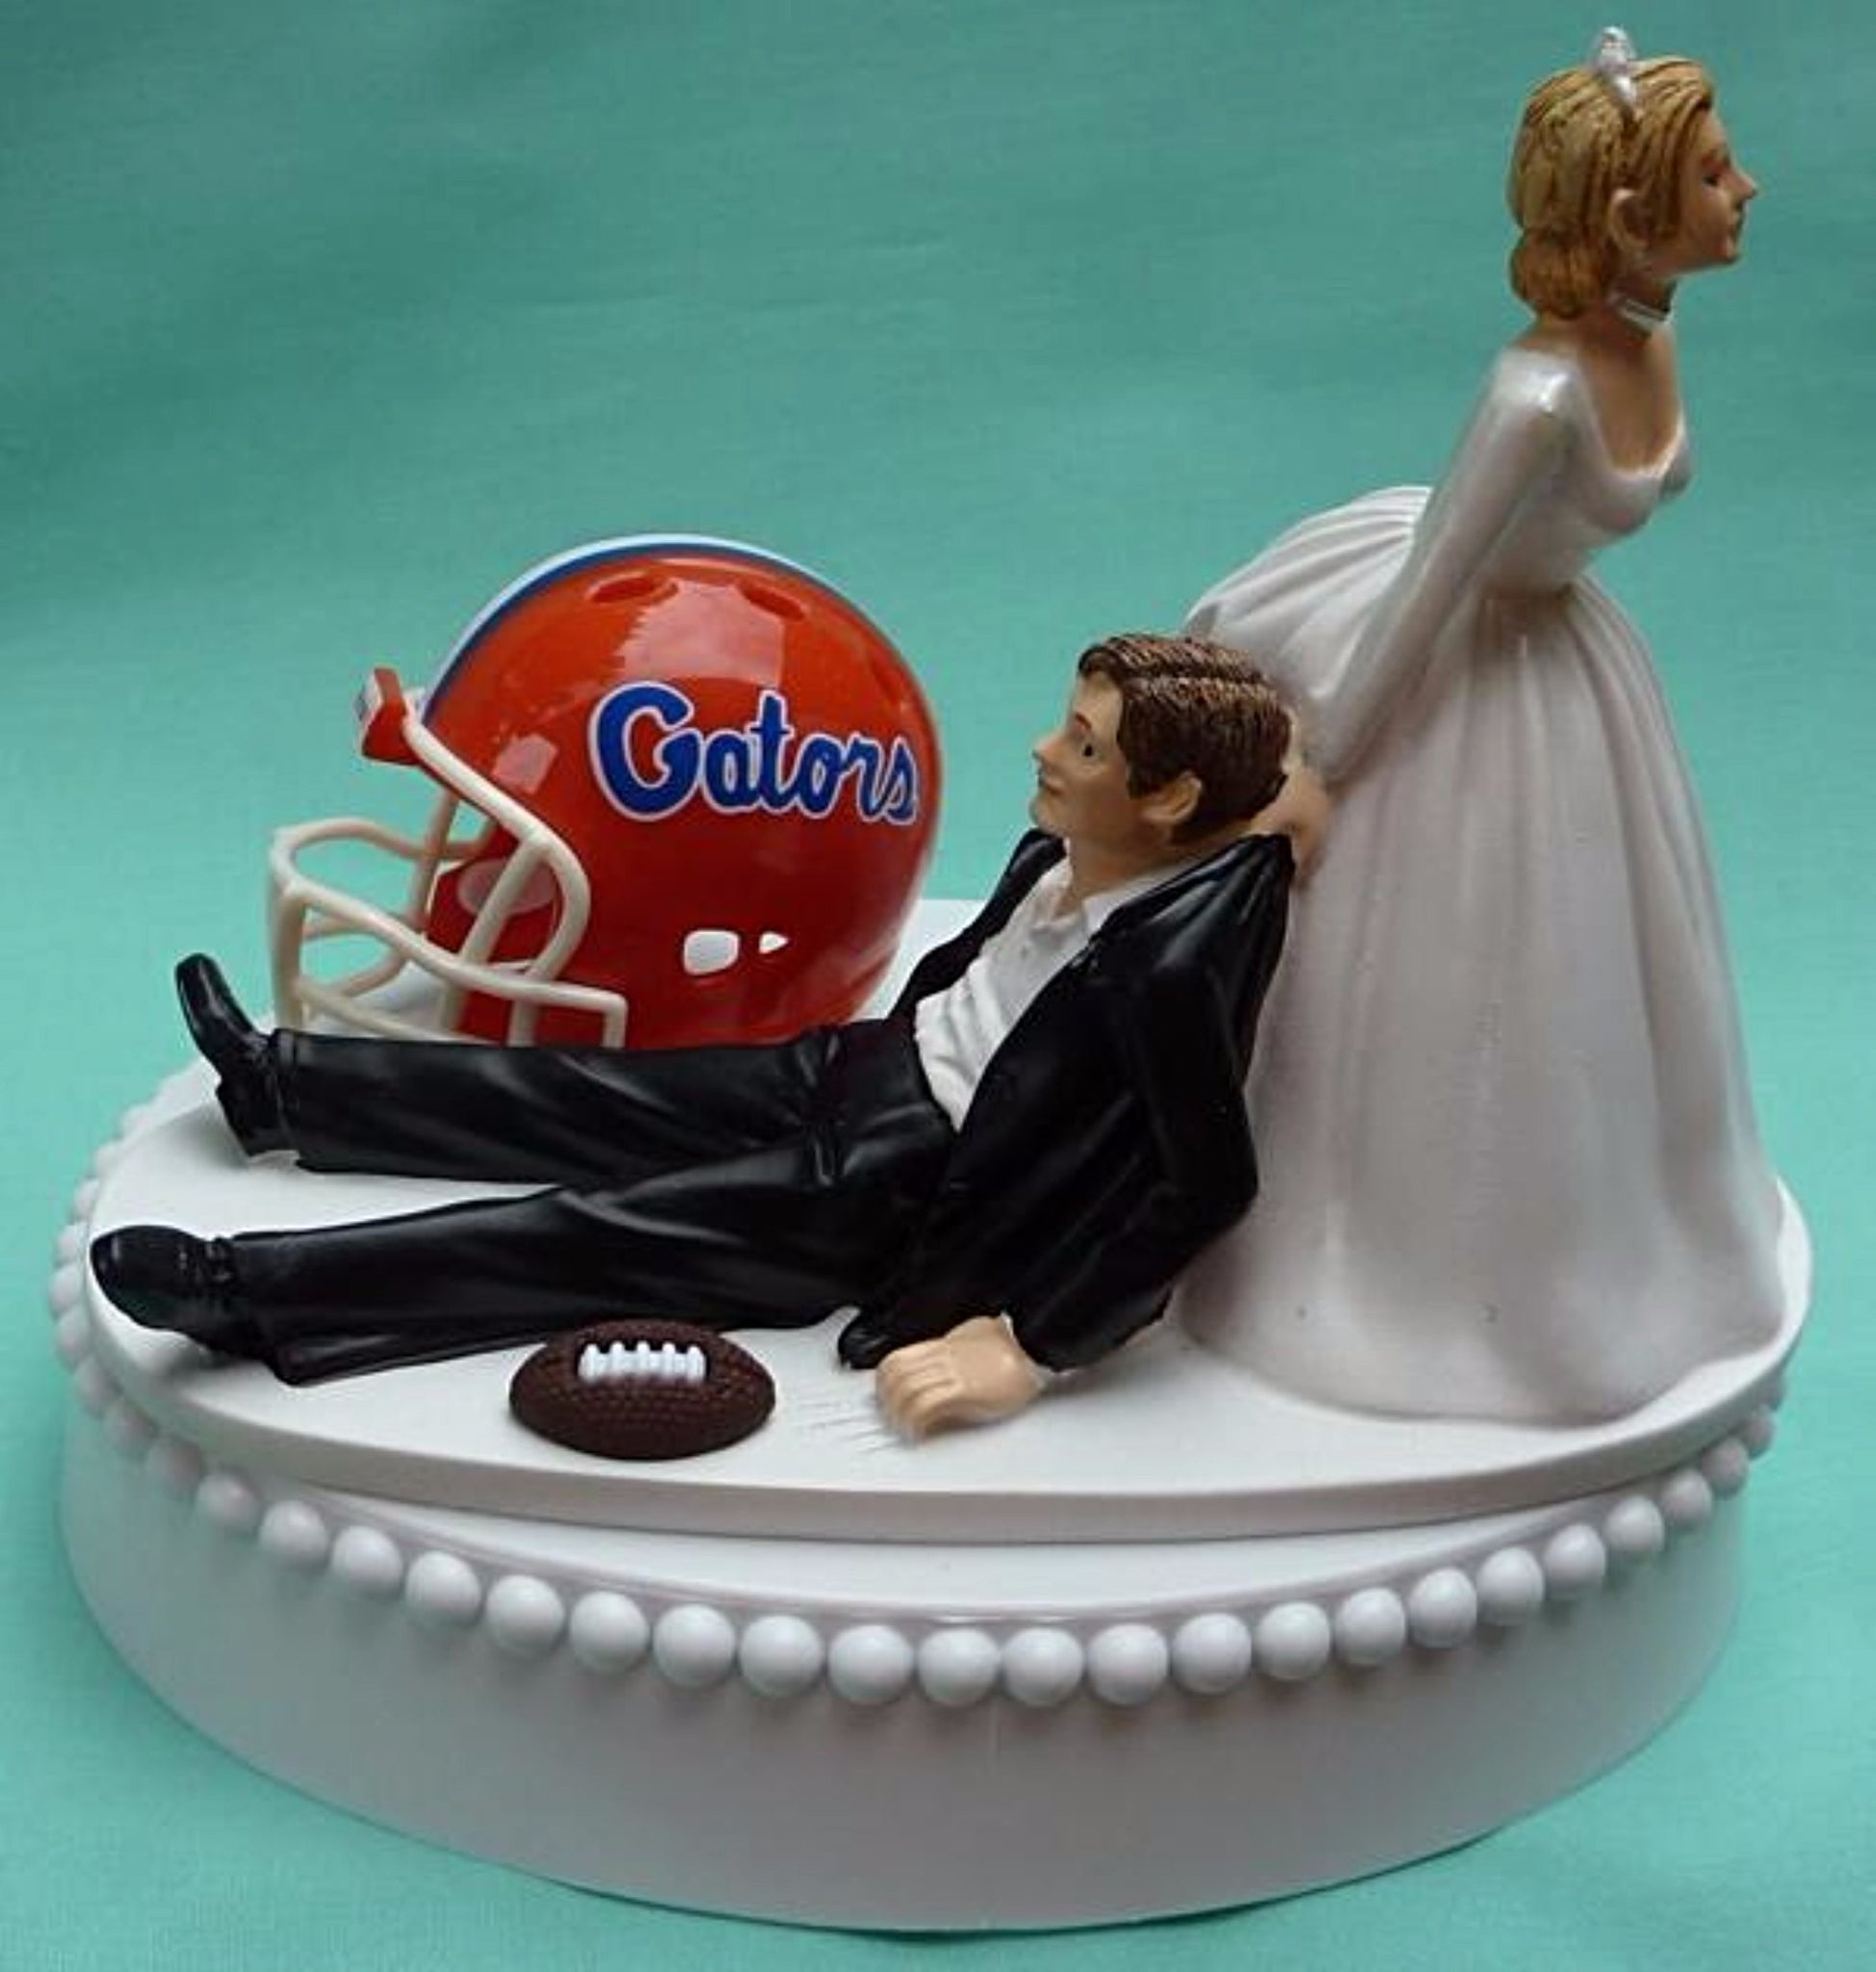 University of Florida wedding cake topper Gators UF football groom's cake top green turf ball helmet humorous bride dragging groom funny reception gift Fun Wedding Things